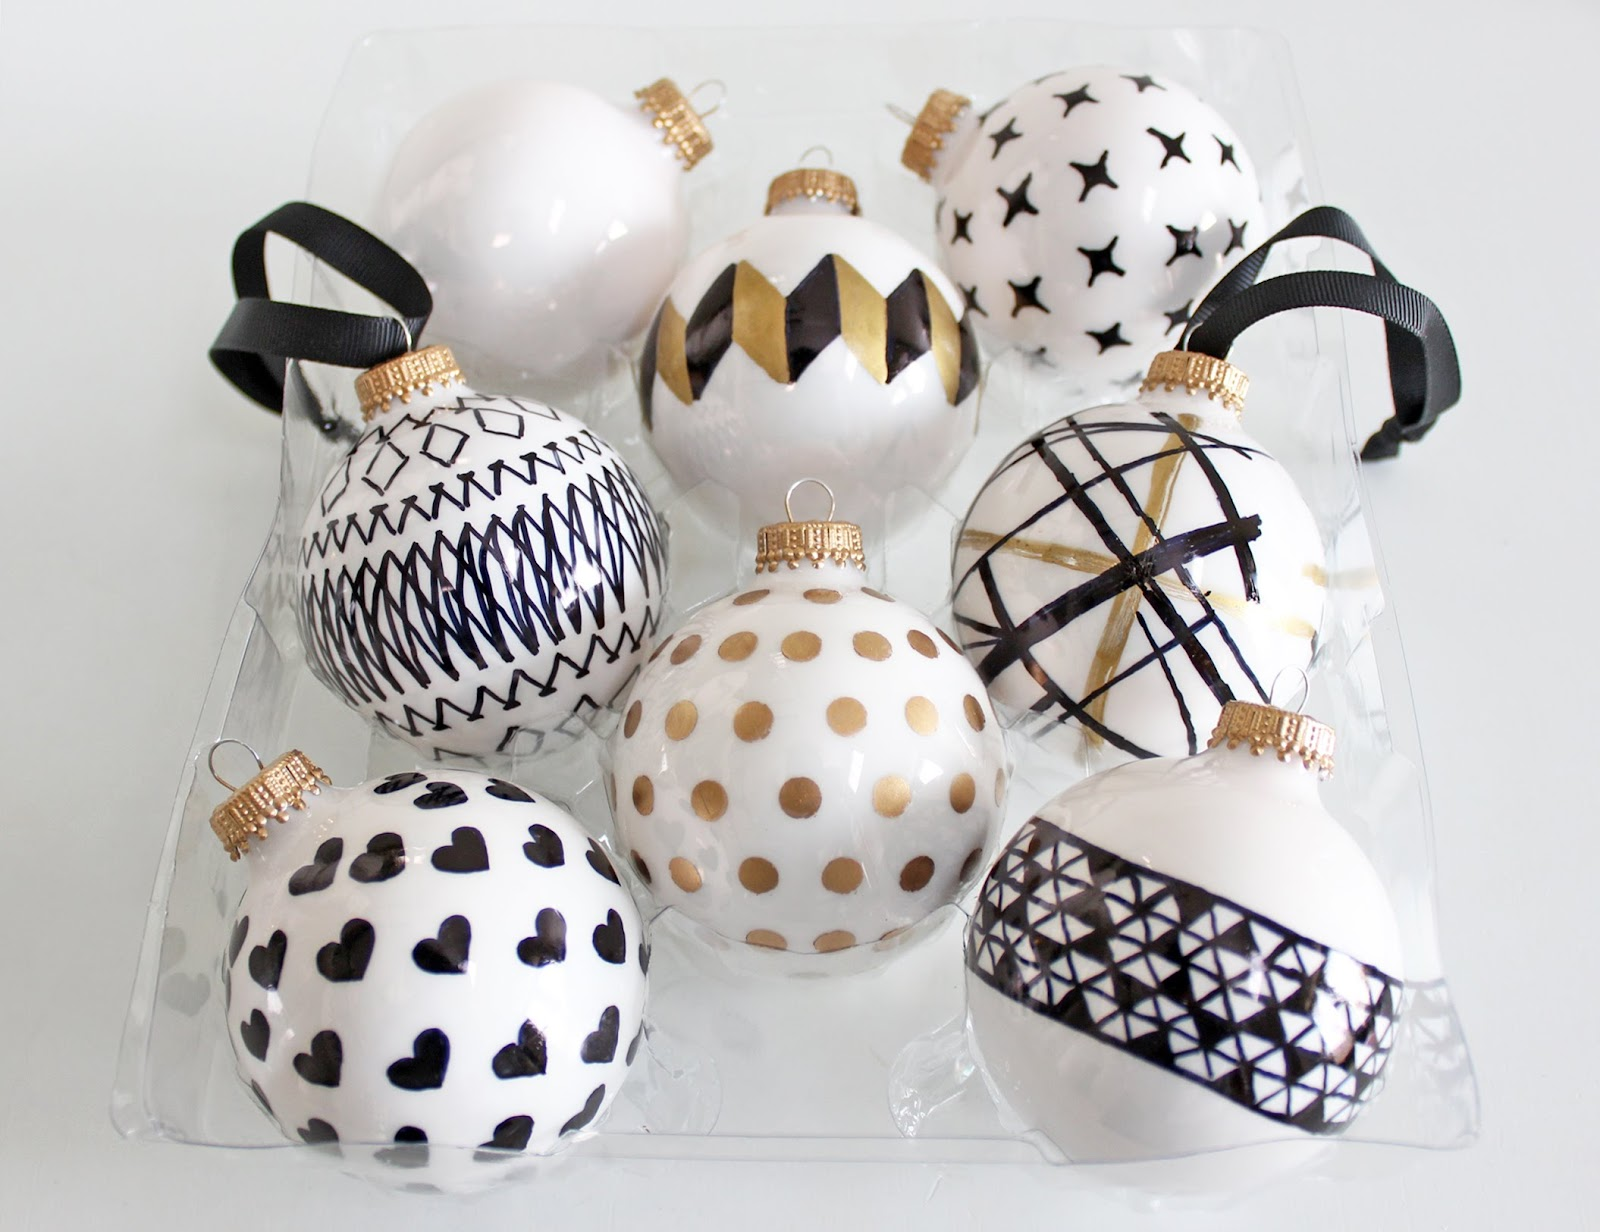 AM Dolce Vita: DIY Handpainted Holiday Ball Ornaments